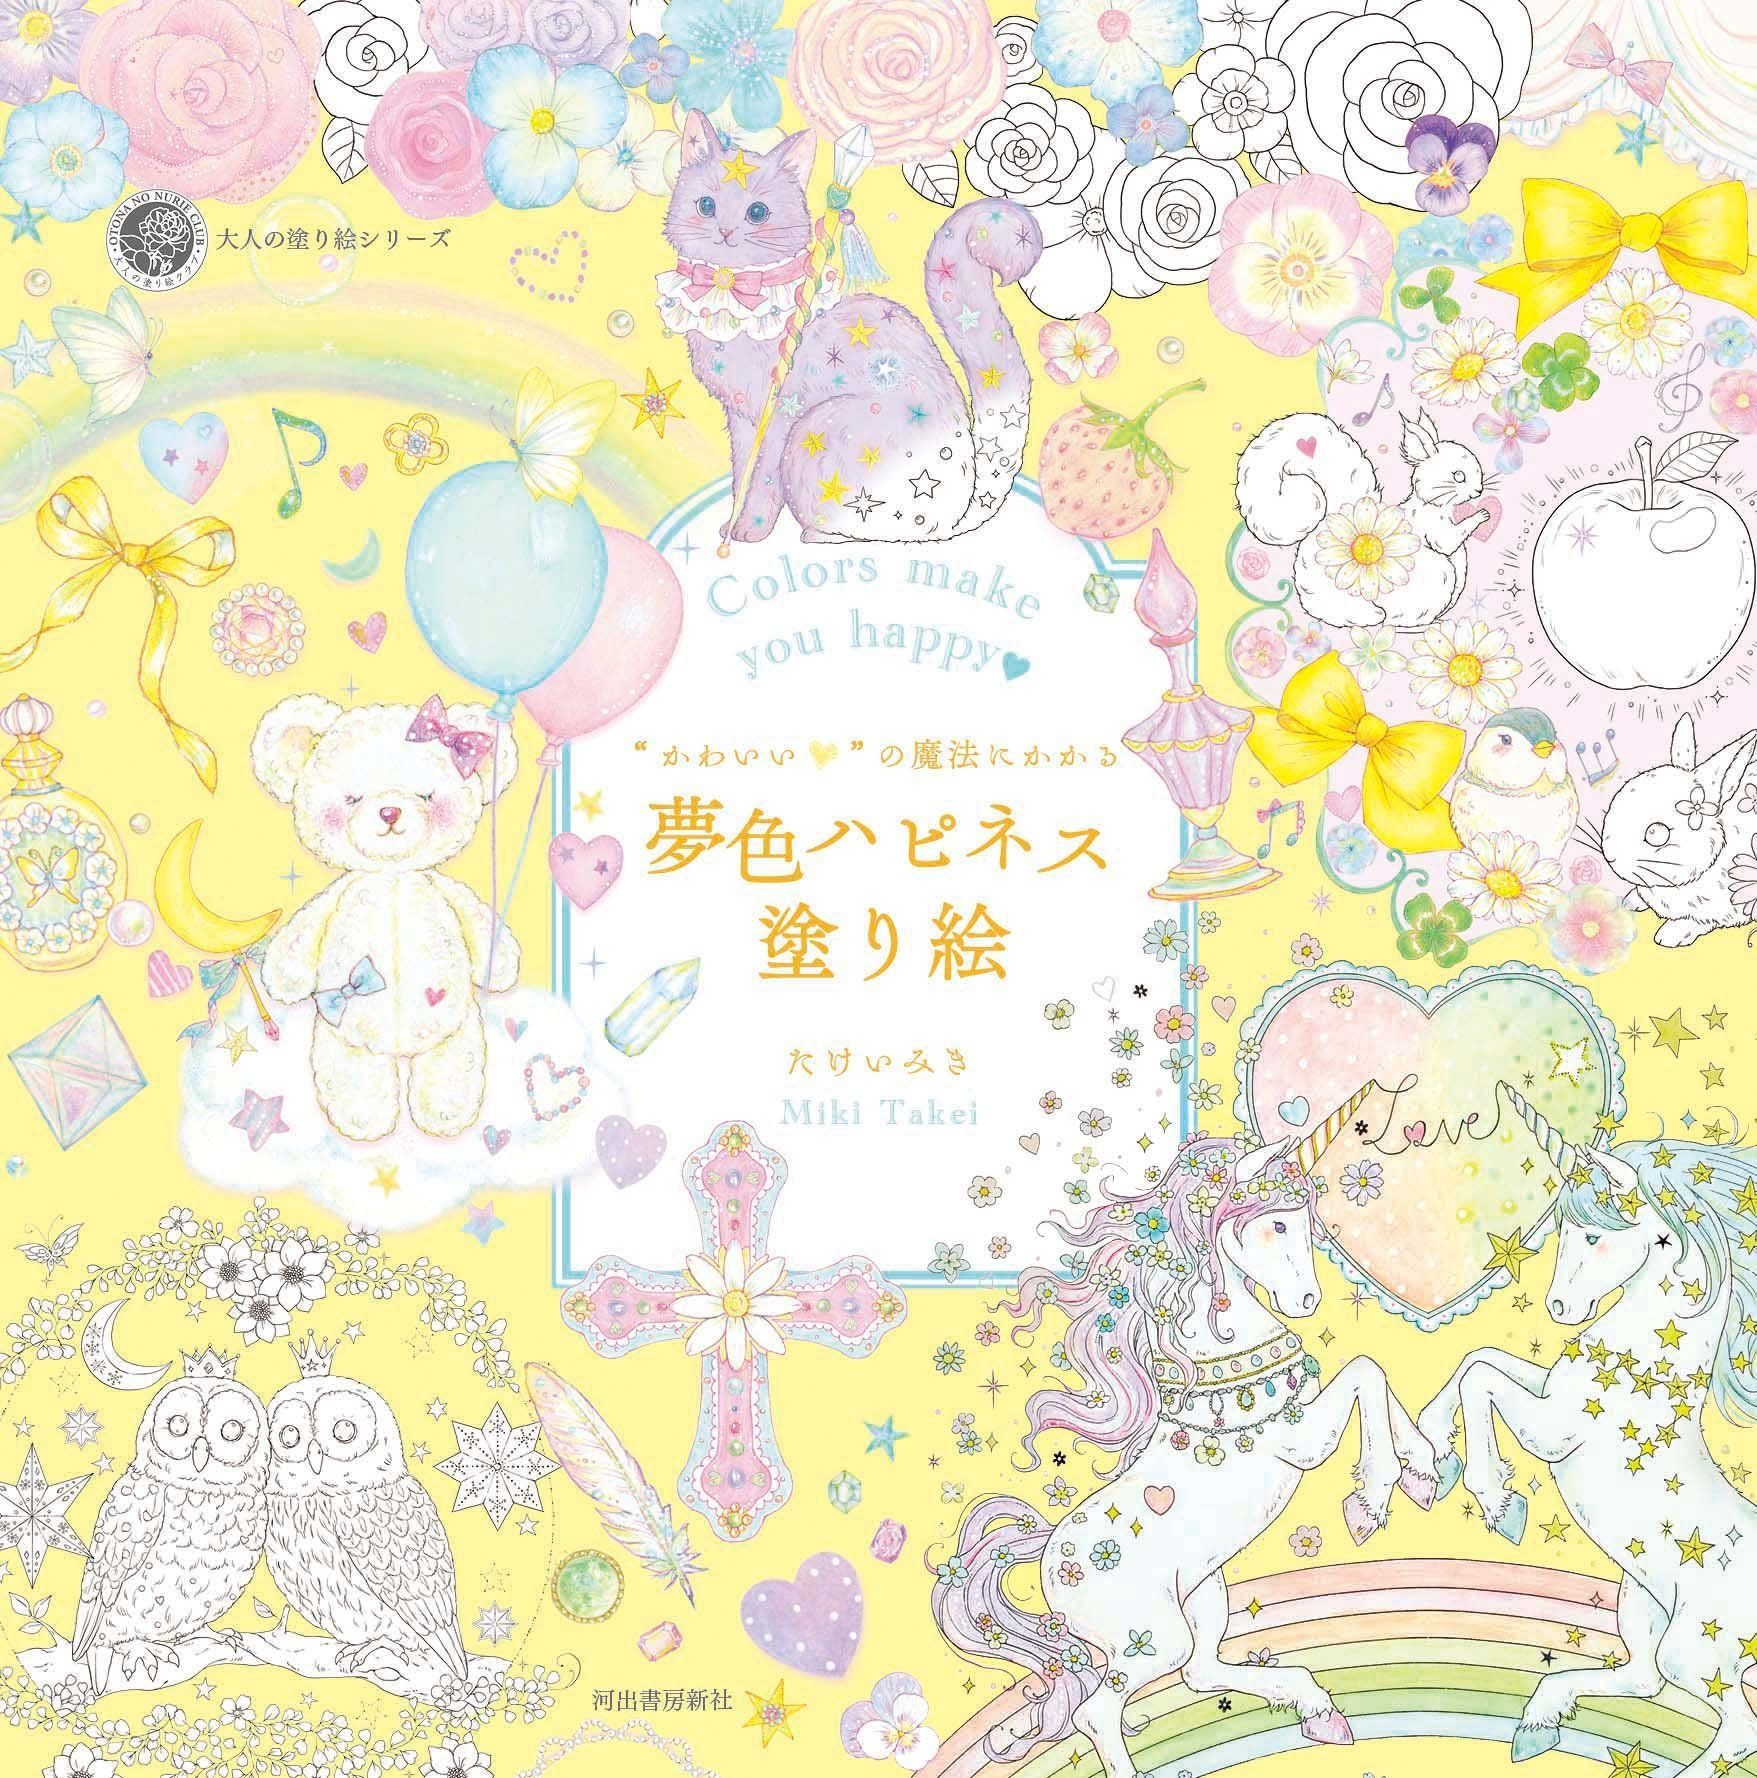 Colors Make You Happy Colouring Book Vol 3 By Miki Takei Etsy Coloring Books Are You Happy Book Crafts